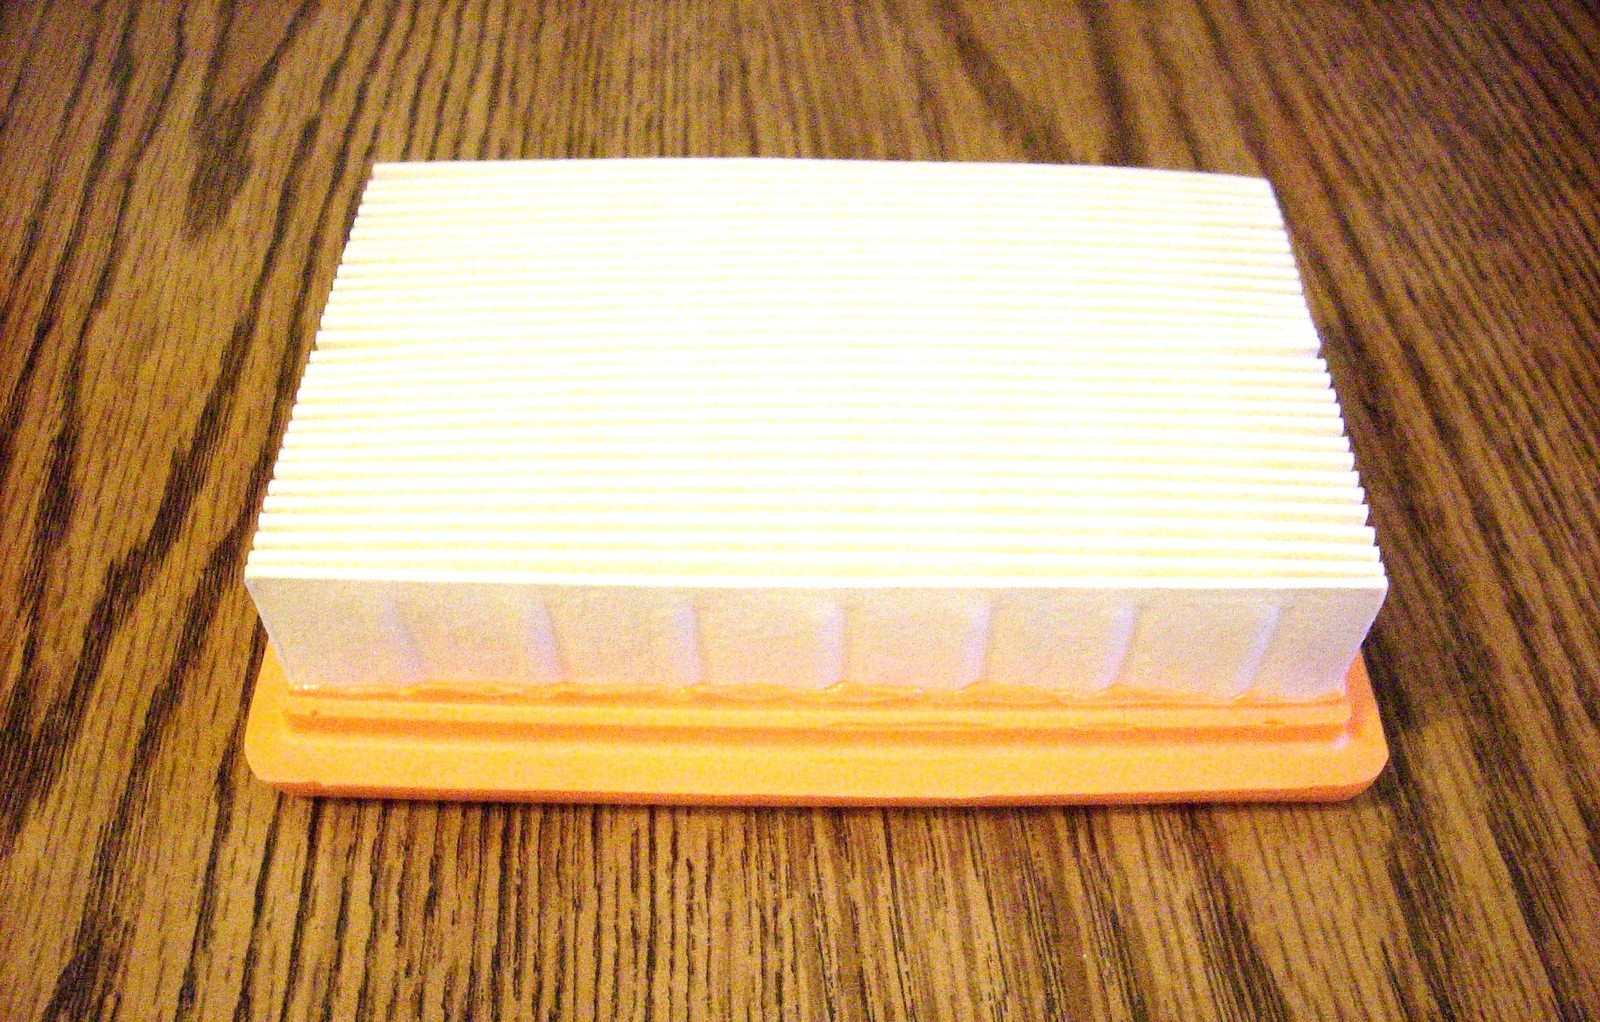 Air filter fits Stihl BR420, BR420C and BR340L backpack blower 42031410301, 4203